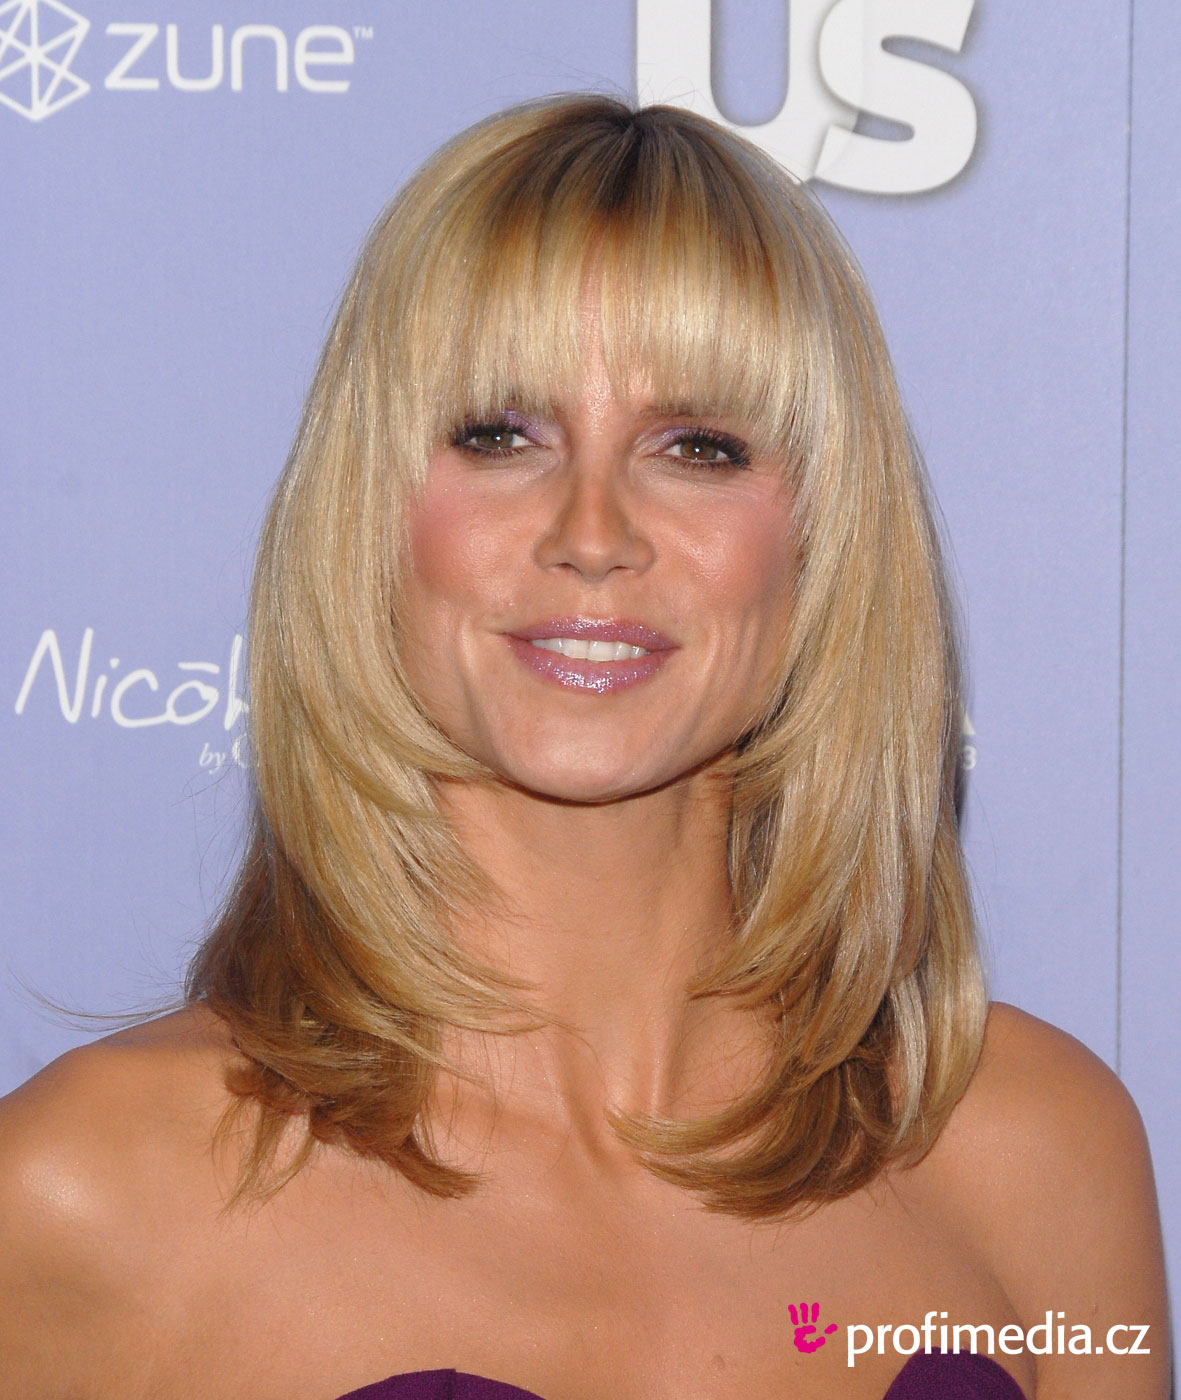 Heidi klum hairstyle easyhairstyler you can try this heidi klums hairstyle with your own photo upload at easyhairstyler urmus Images